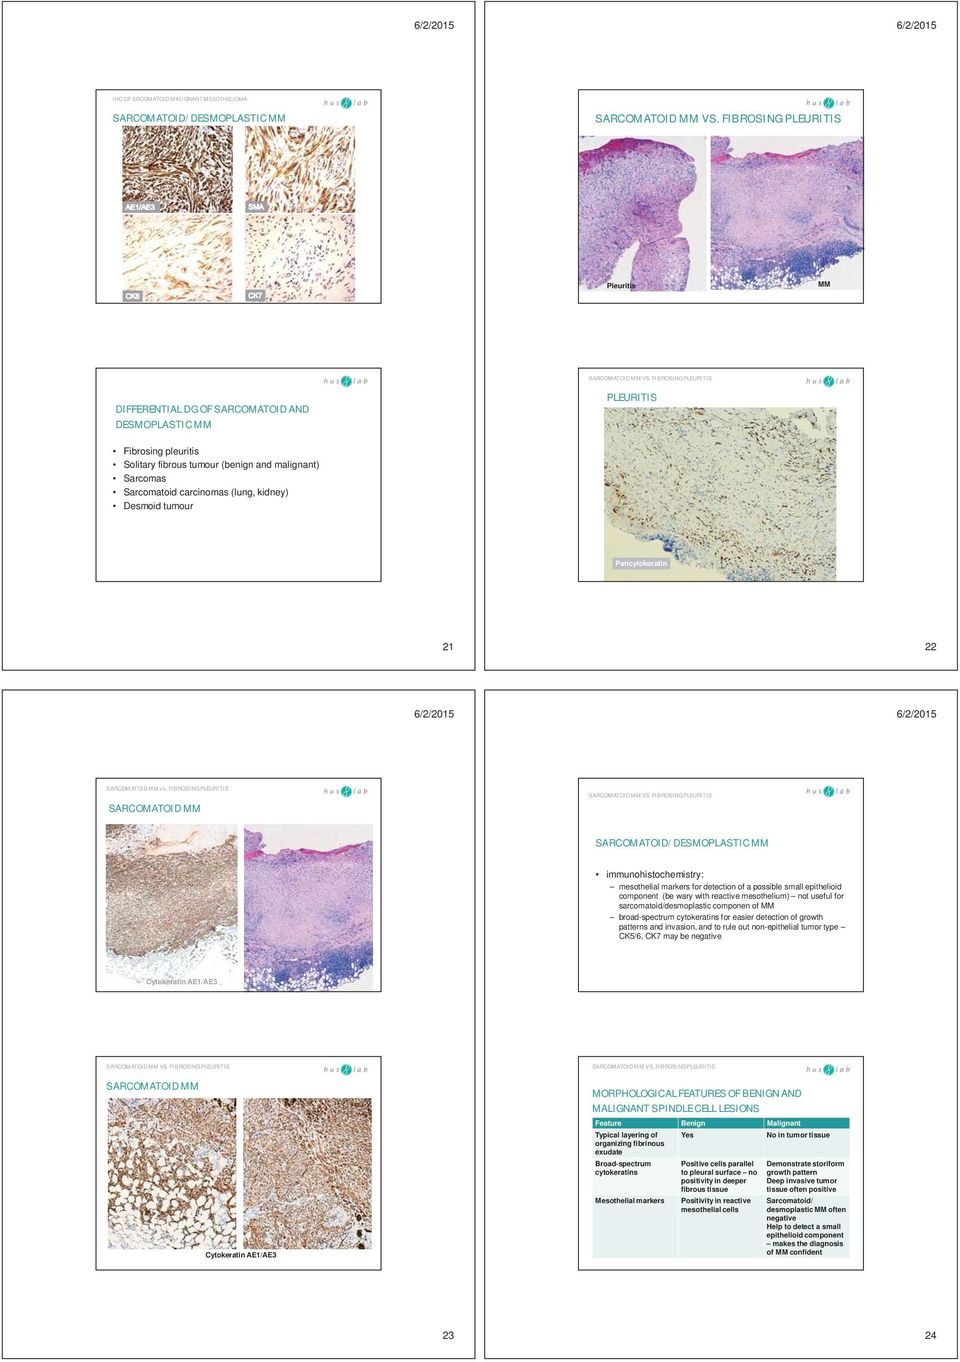 FIBROSING PLEURITIS SARCOMATOID MM SARCOMATOID/DESMOPLASTIC MM immunohistochemistry: mesothelial markers for detection of a possible small epithelioid component (be wary with reactive mesothelium)